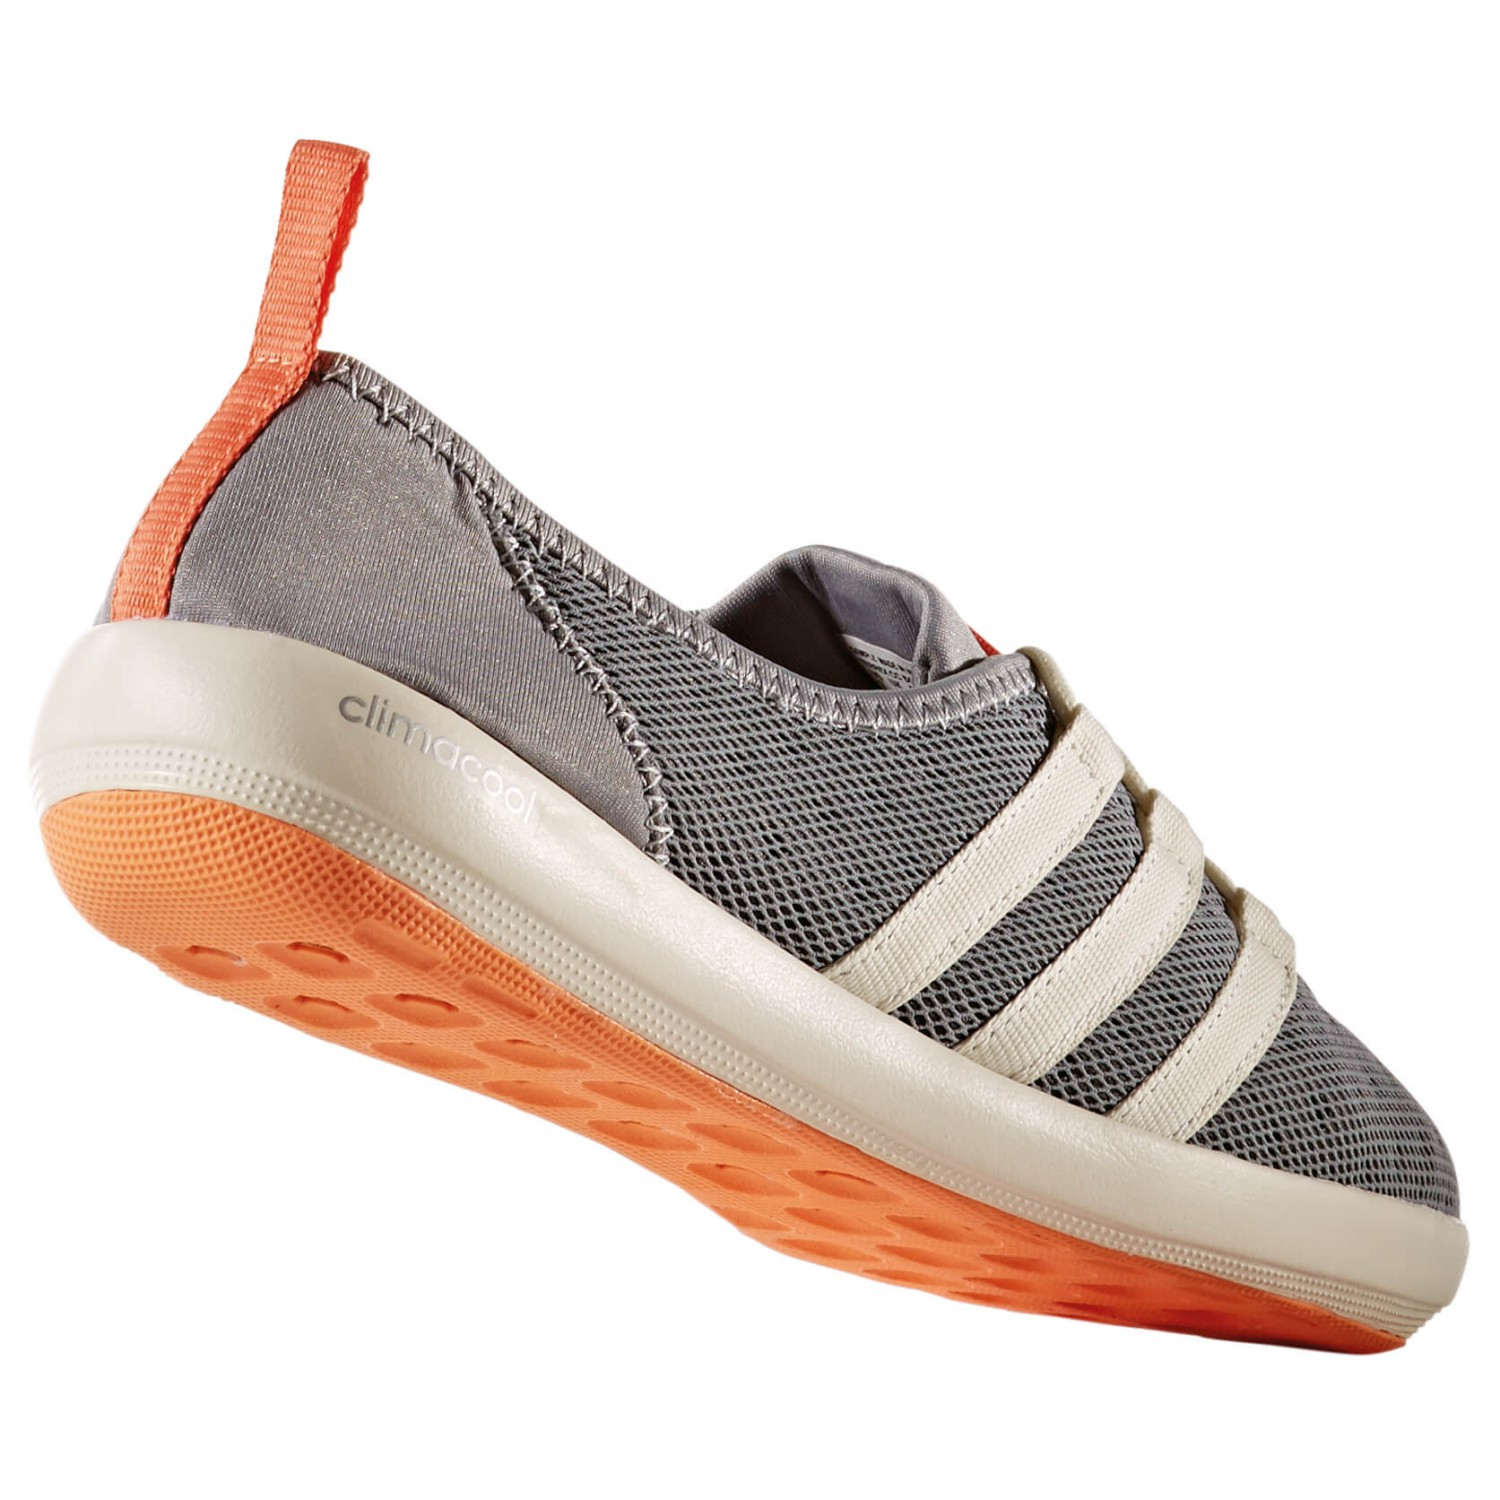 7fcb4dd87442 ... adidas - Women s Terrex CC Boat Sleek - Water shoes ...